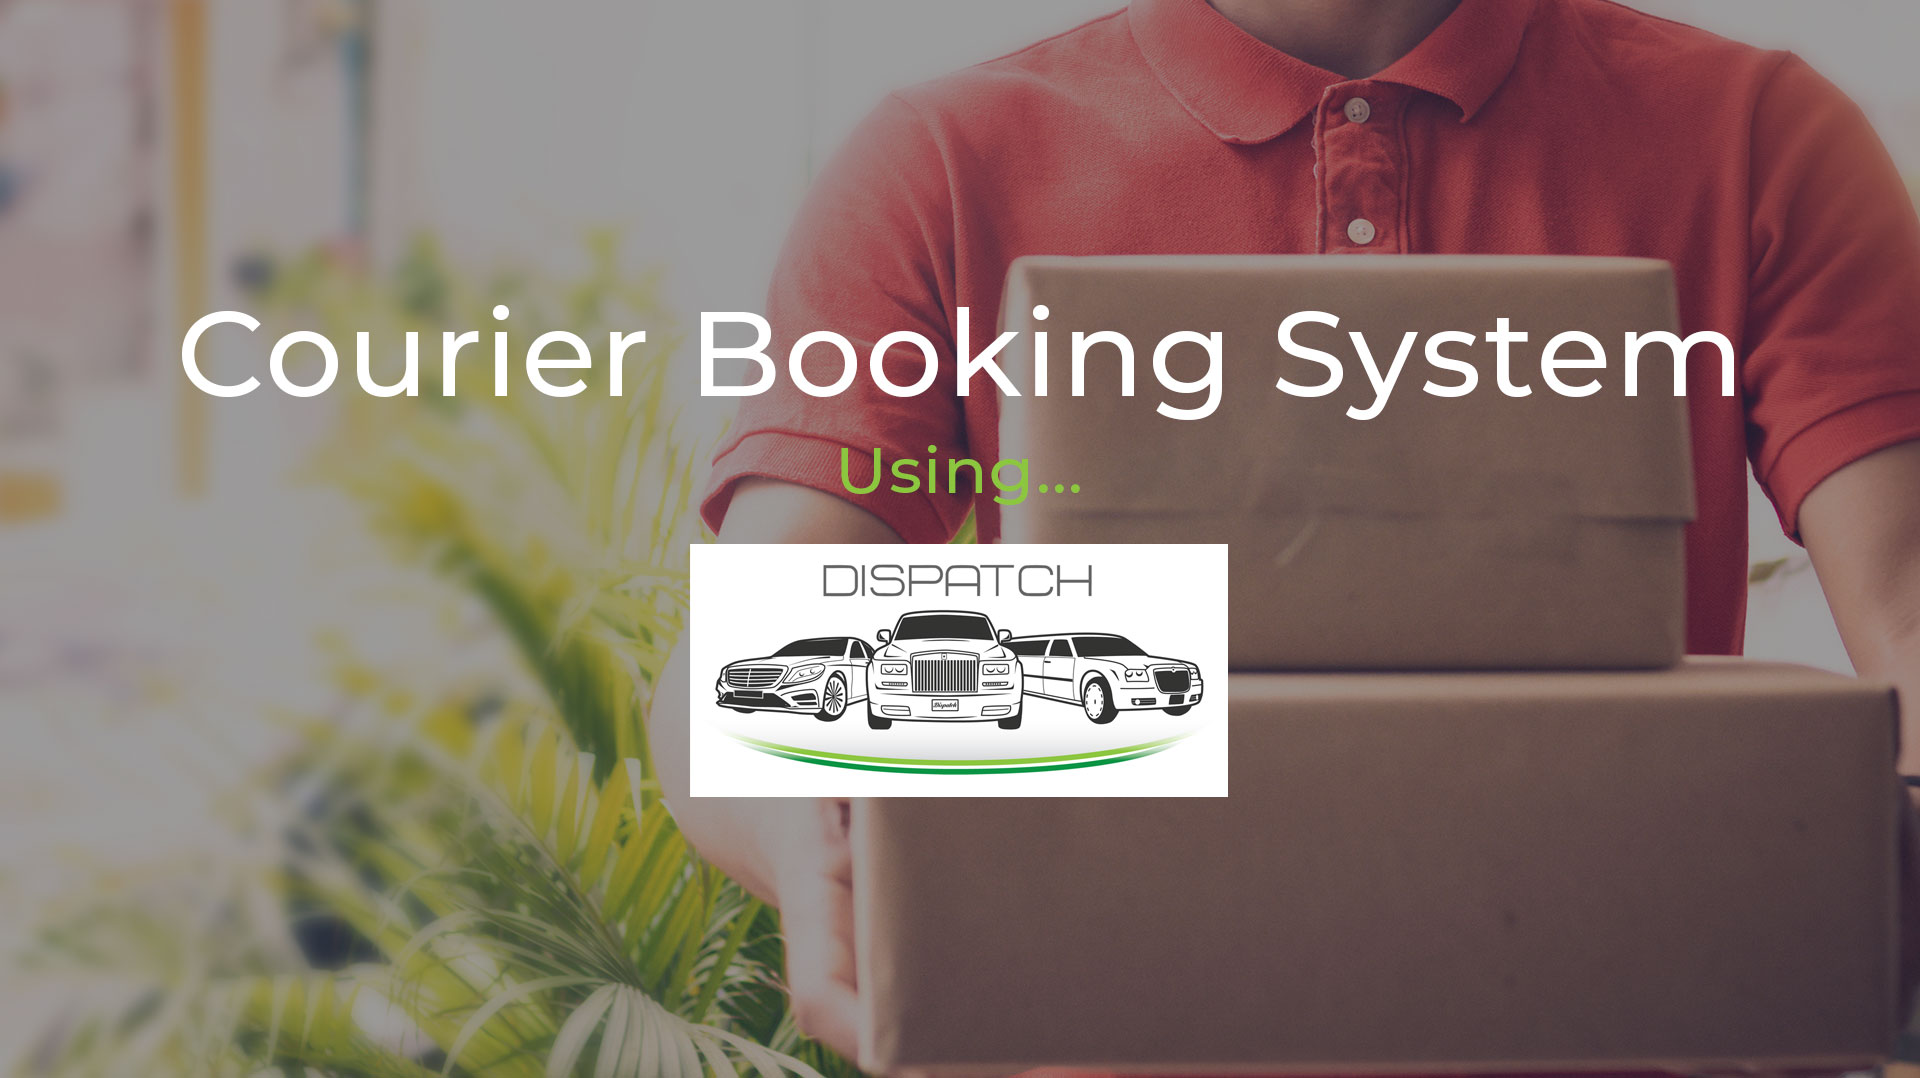 A Courier Booking System that Delivers the Goods